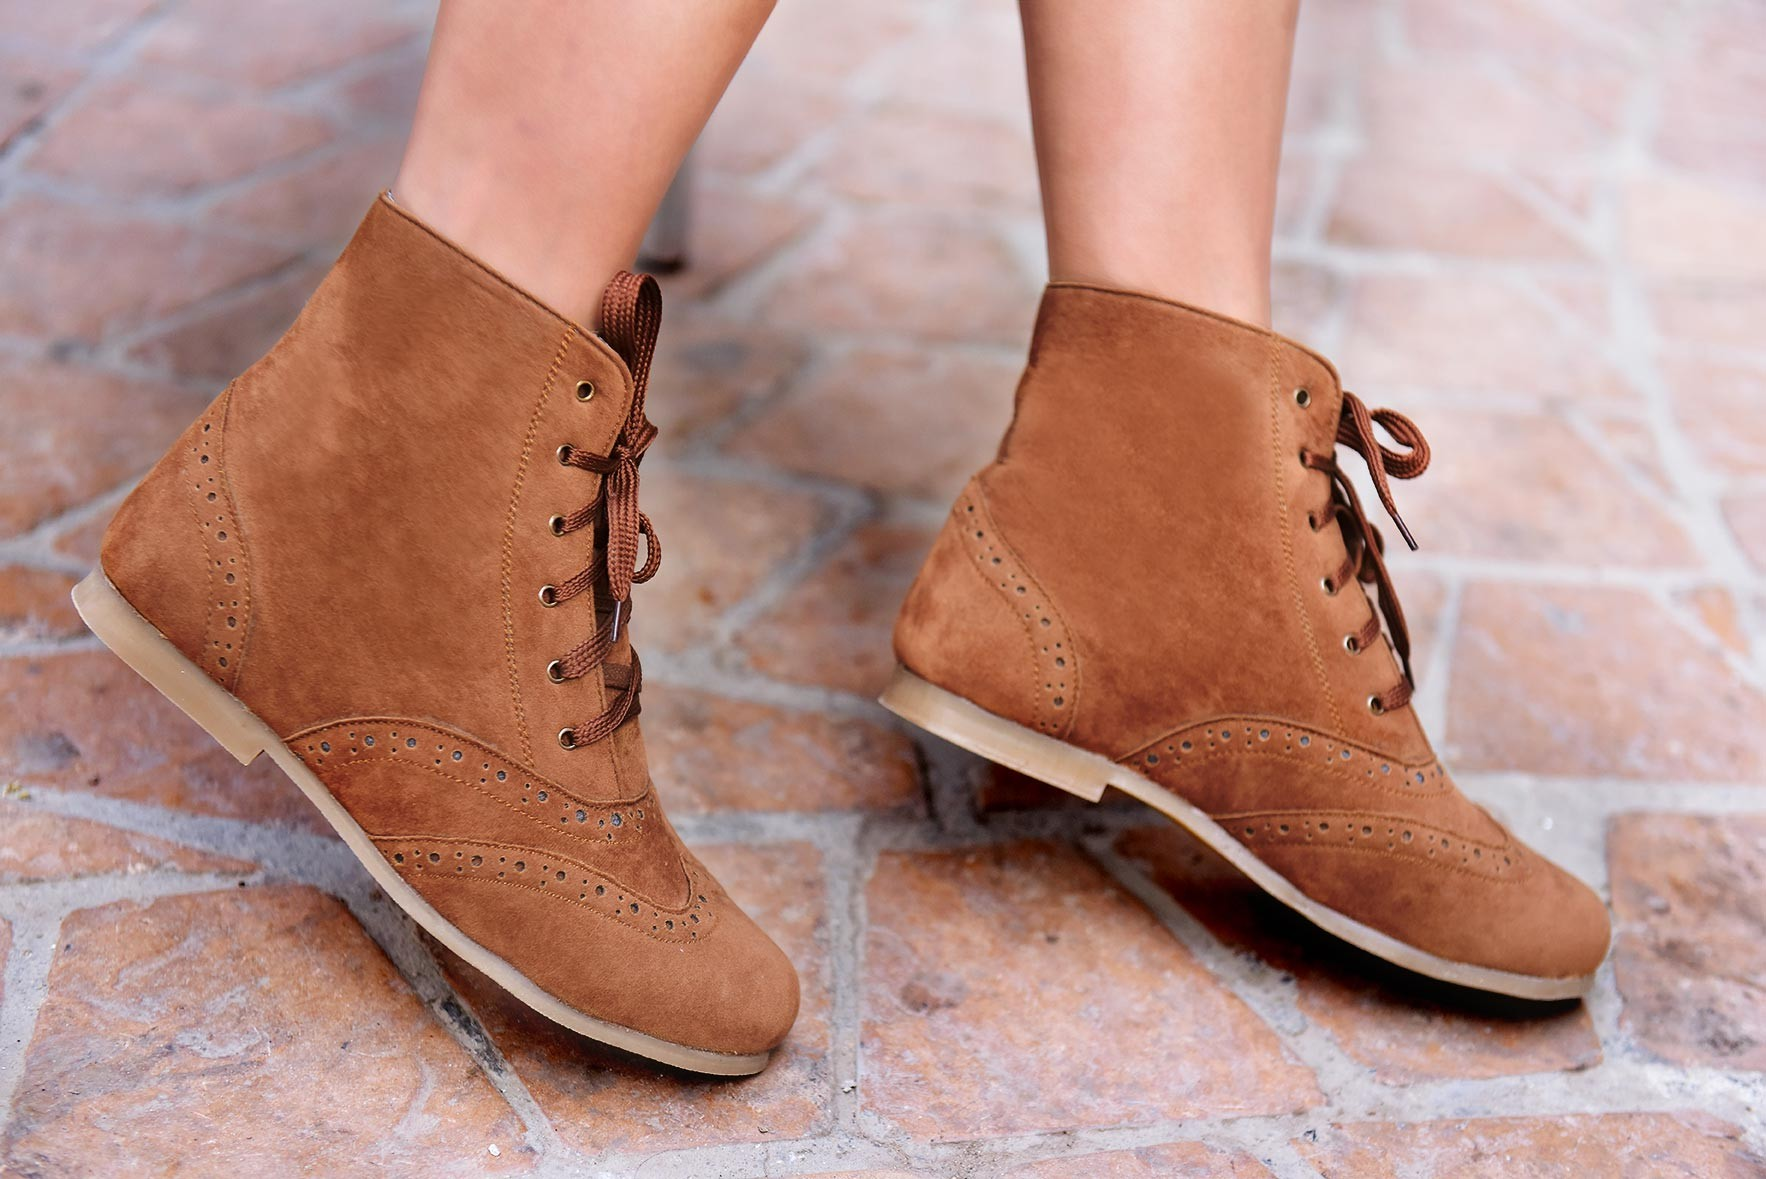 Vintage styled brown boots